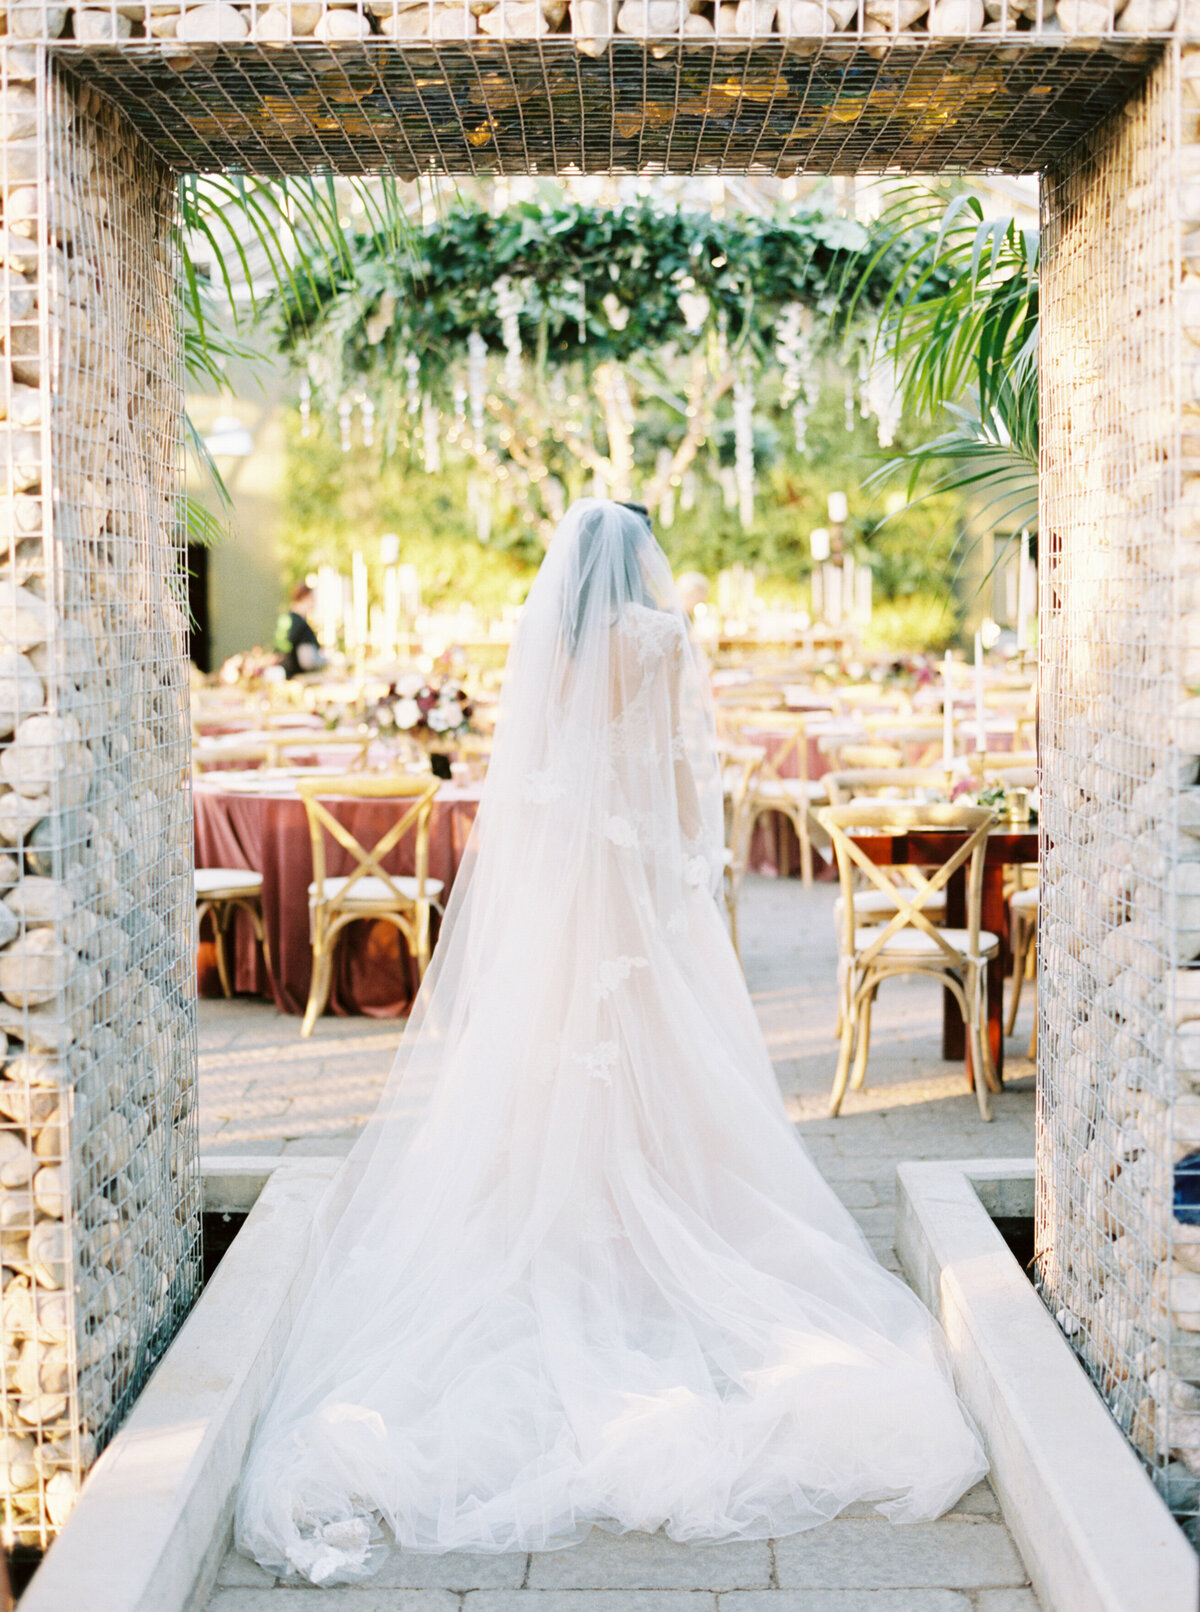 Kaylea Moreno_wedding gallery - Rami-Cassandra-Wedding-krmorenophoto-198